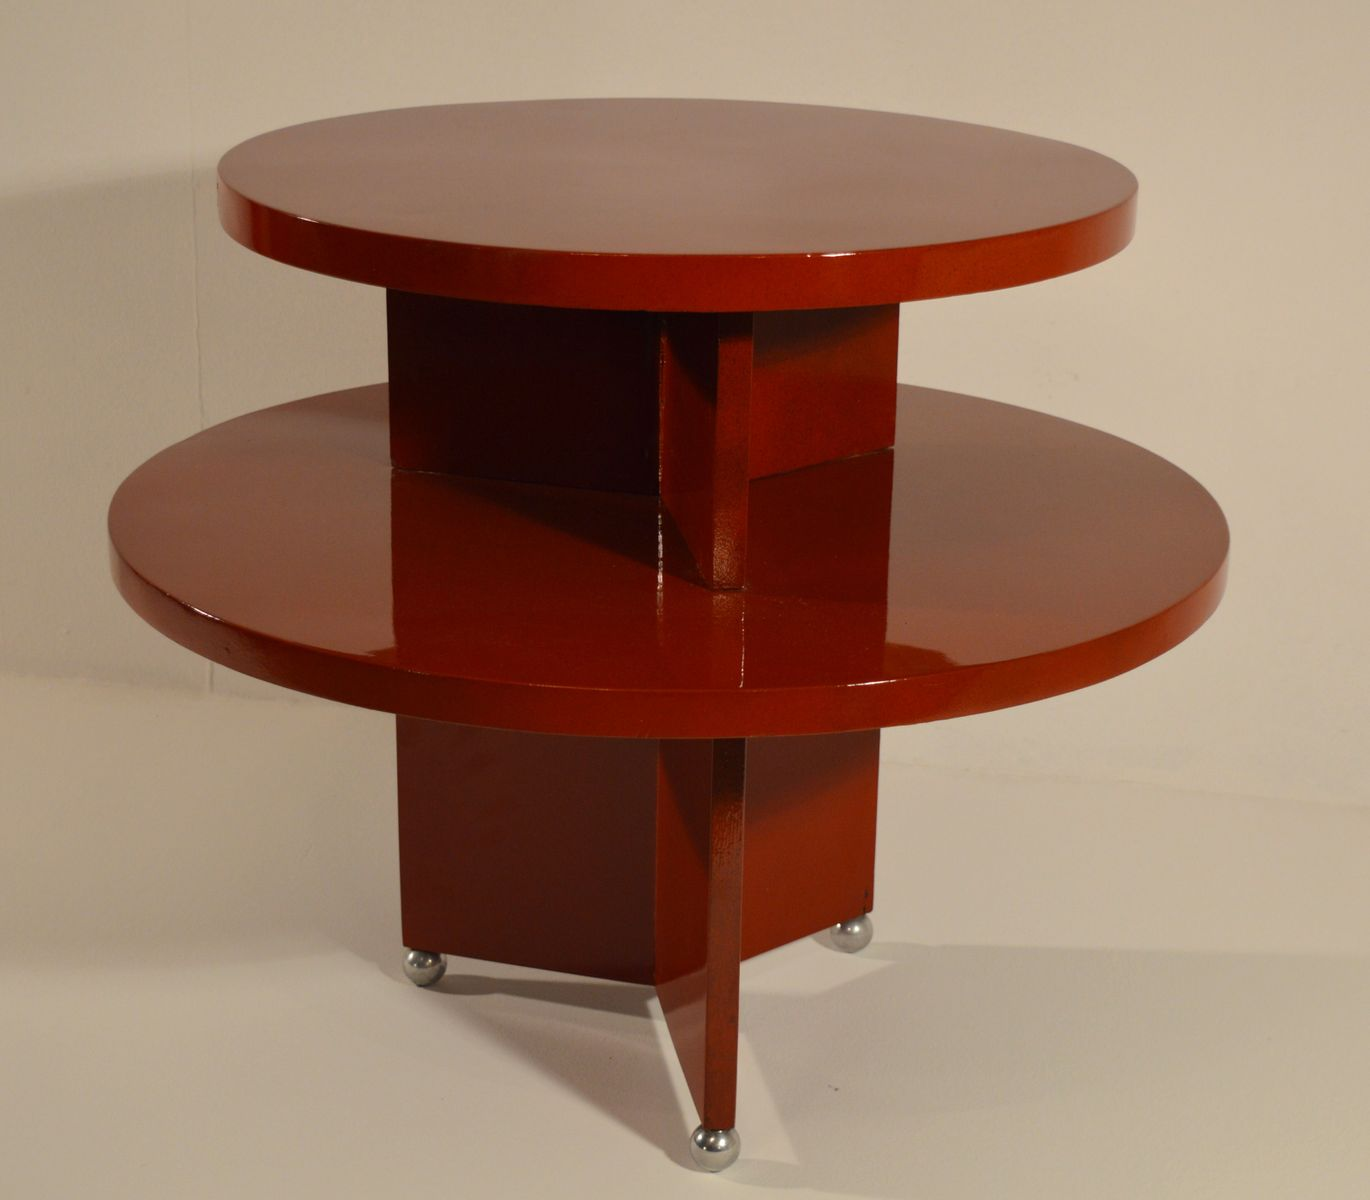 table basse art d co en rouge laqu 1930s en vente sur pamono. Black Bedroom Furniture Sets. Home Design Ideas